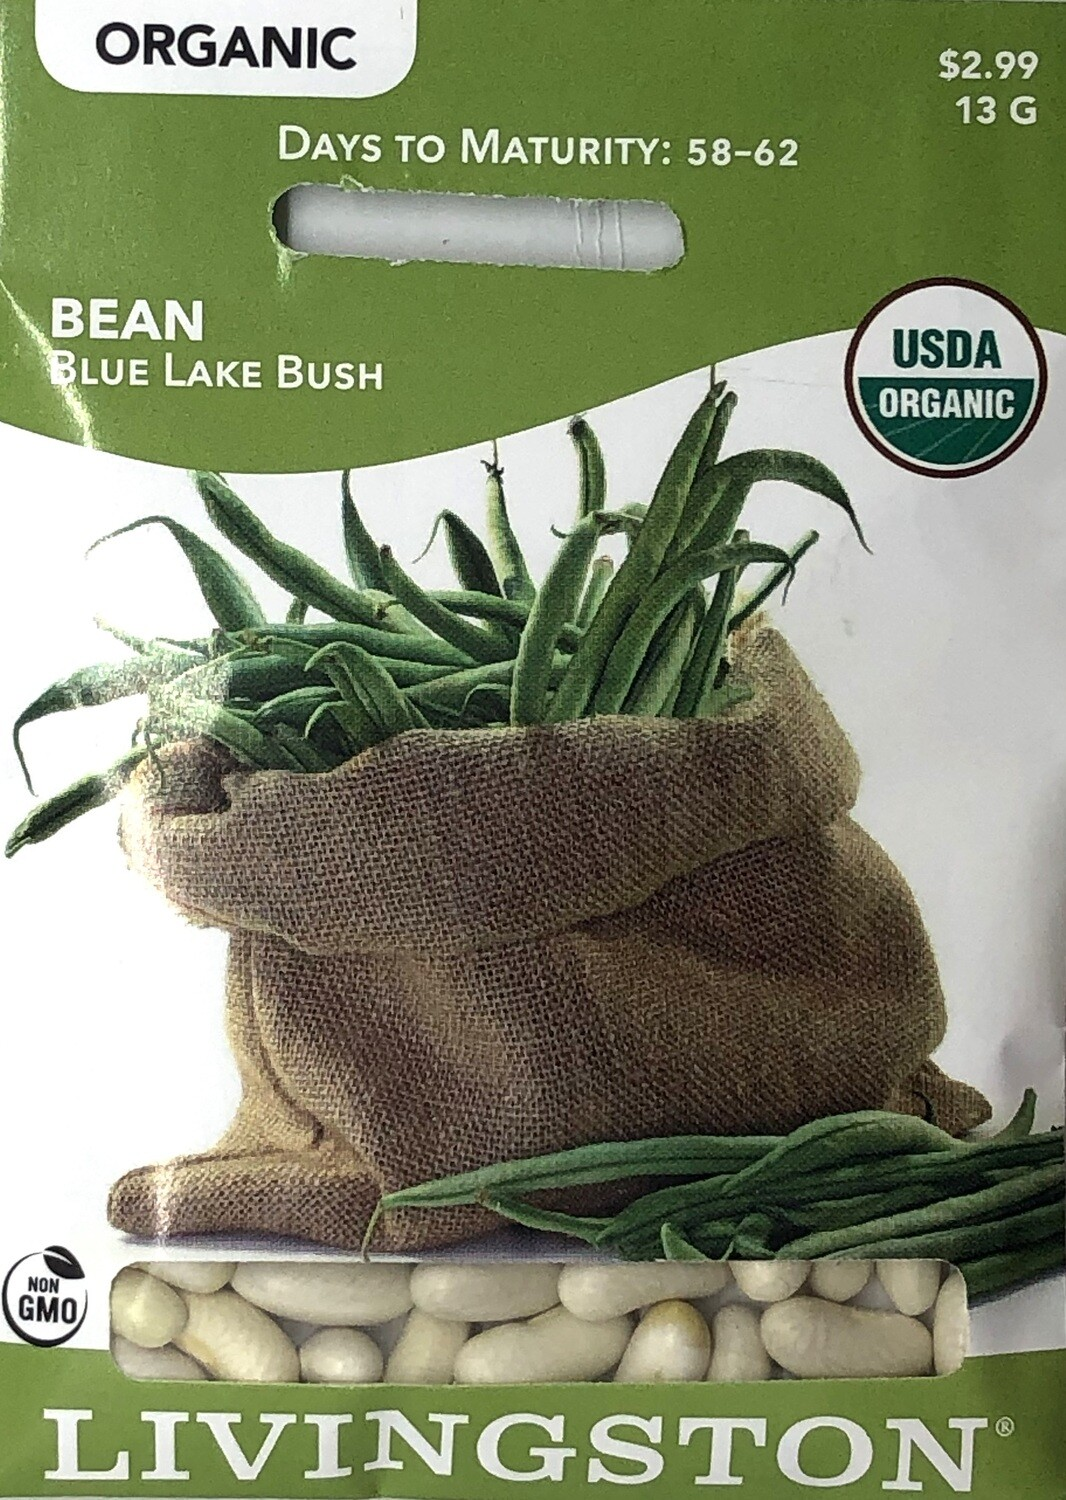 BEAN - ORGANIC - BLUE LAKE BUSH